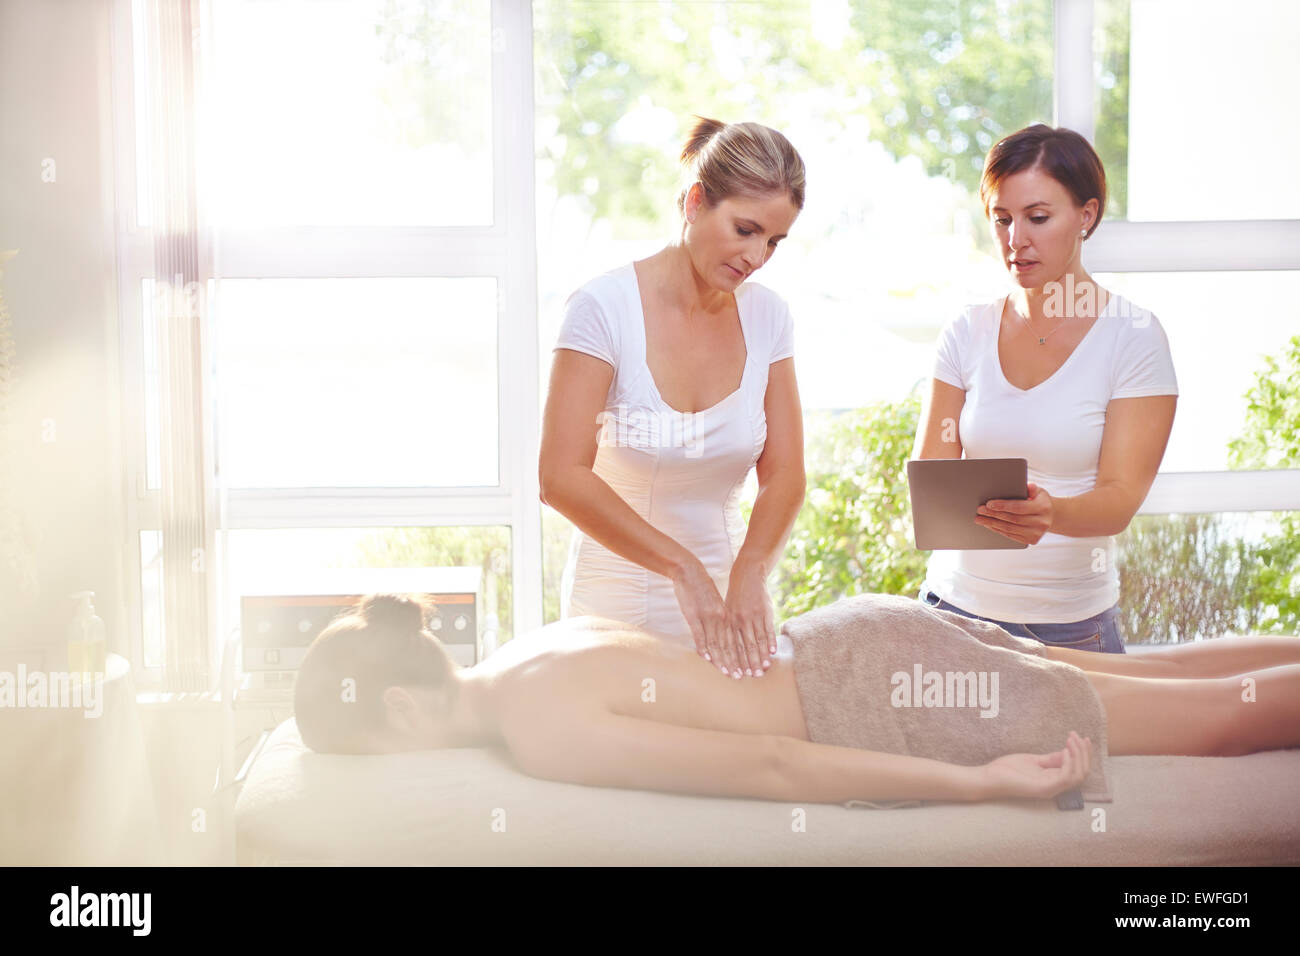 Masseuses with digital tablet massaging woman's back - Stock Image